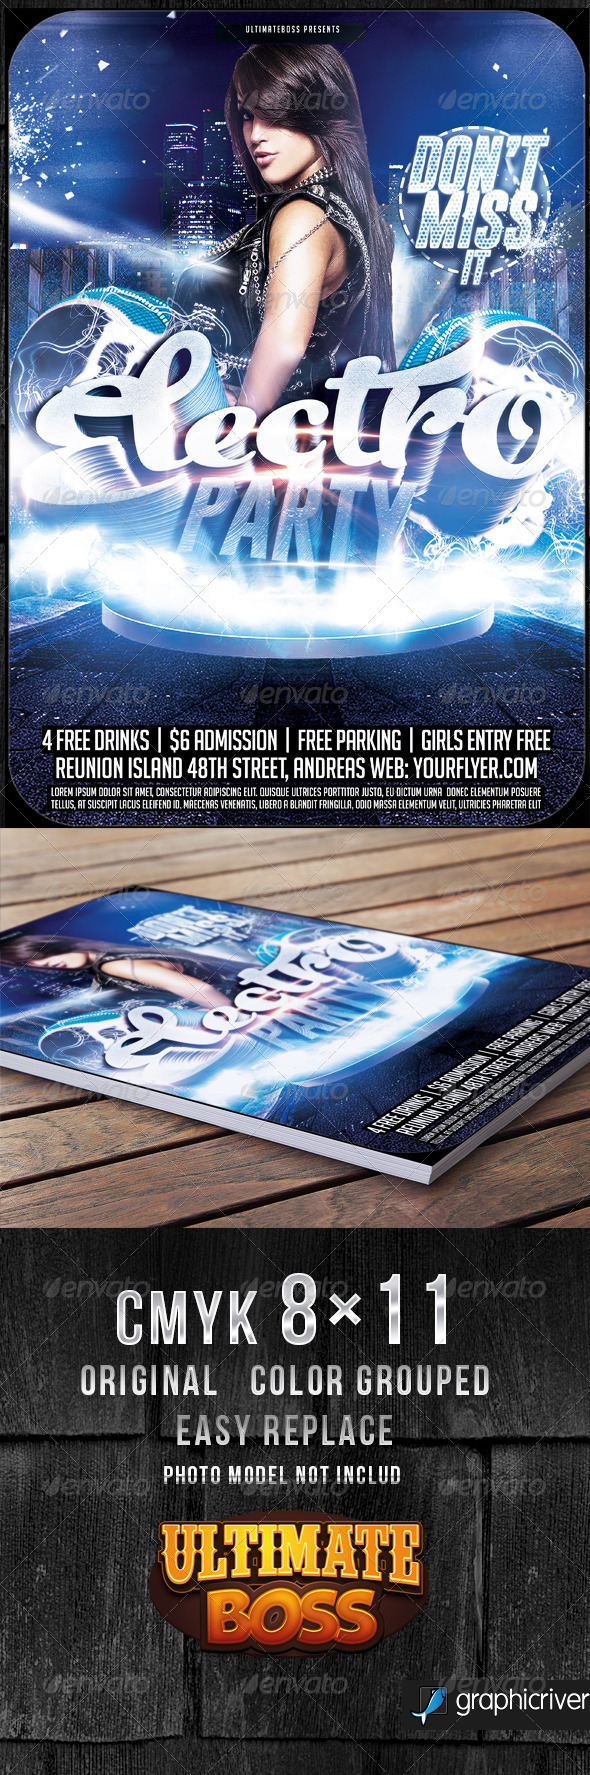 Electro Night Flyer Template - Flyers Print Templates